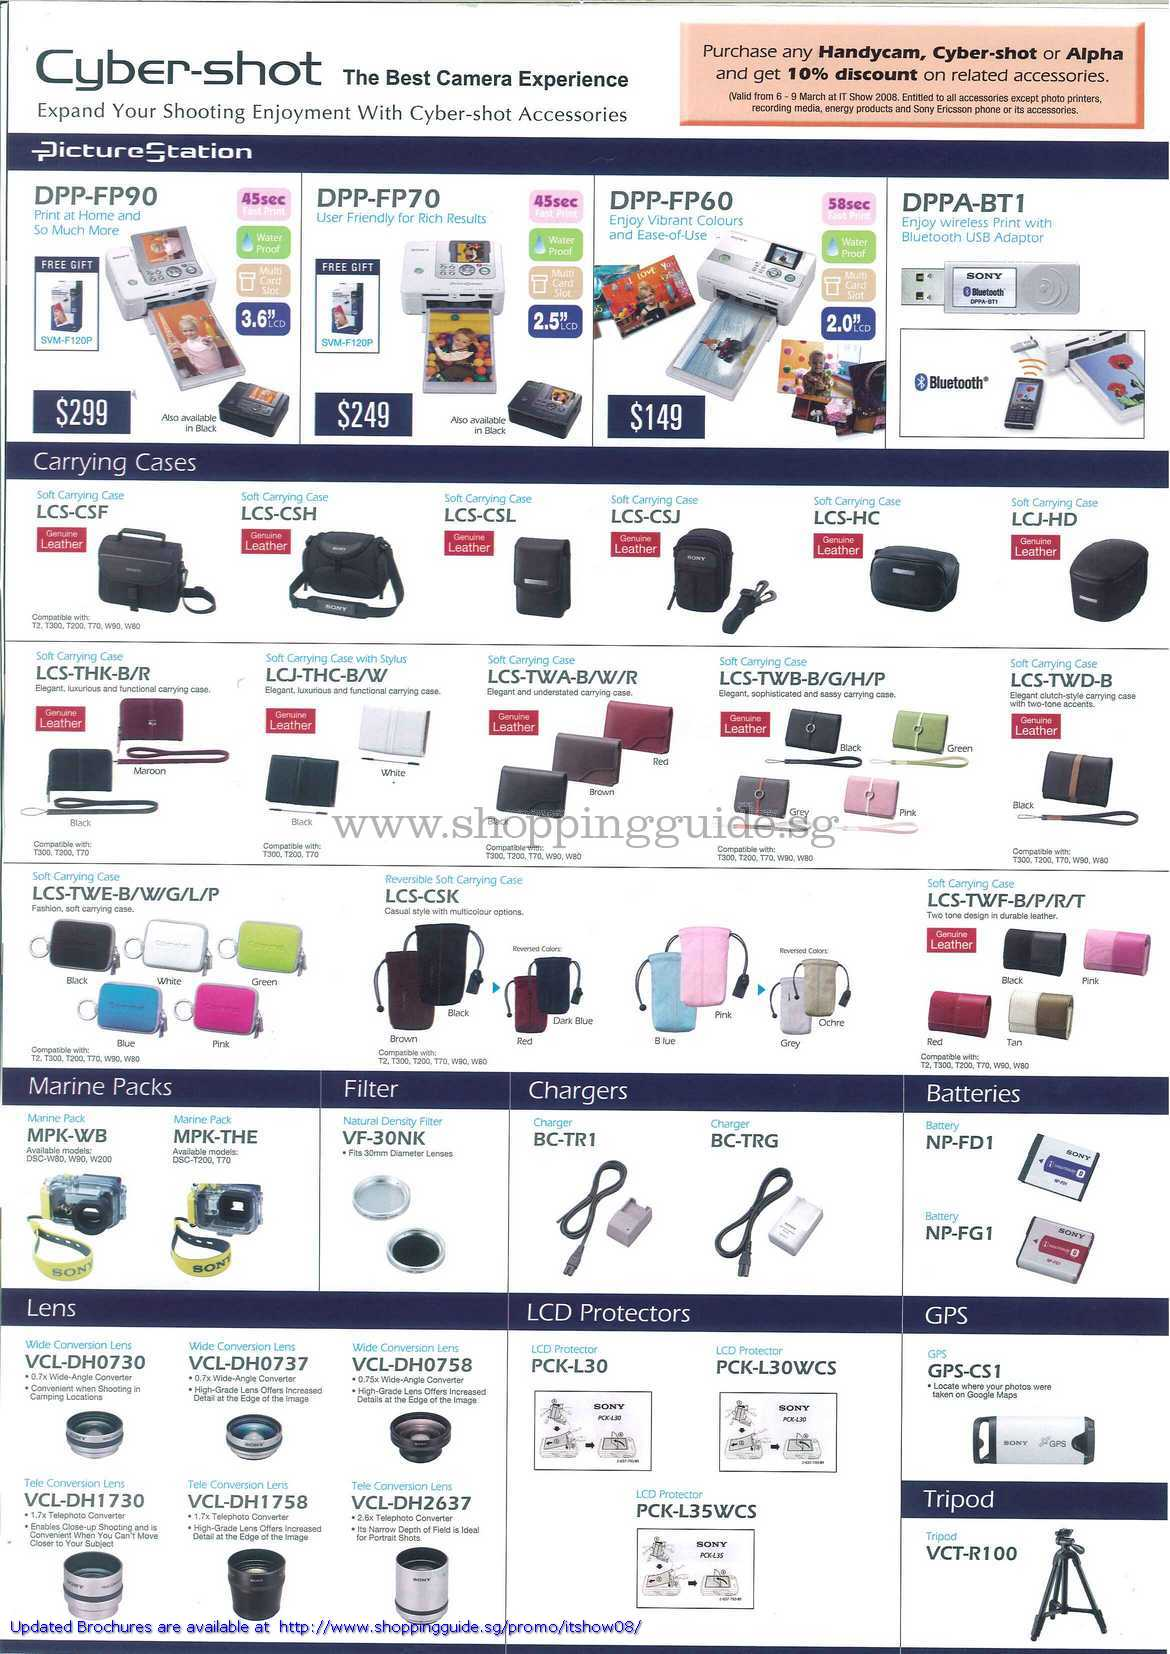 IT Show 2008 price list image brochure of Sony Cybershot Picture Station DPP LCS Marine Packs Filter Chargers Batteries Lens GPS Tripod